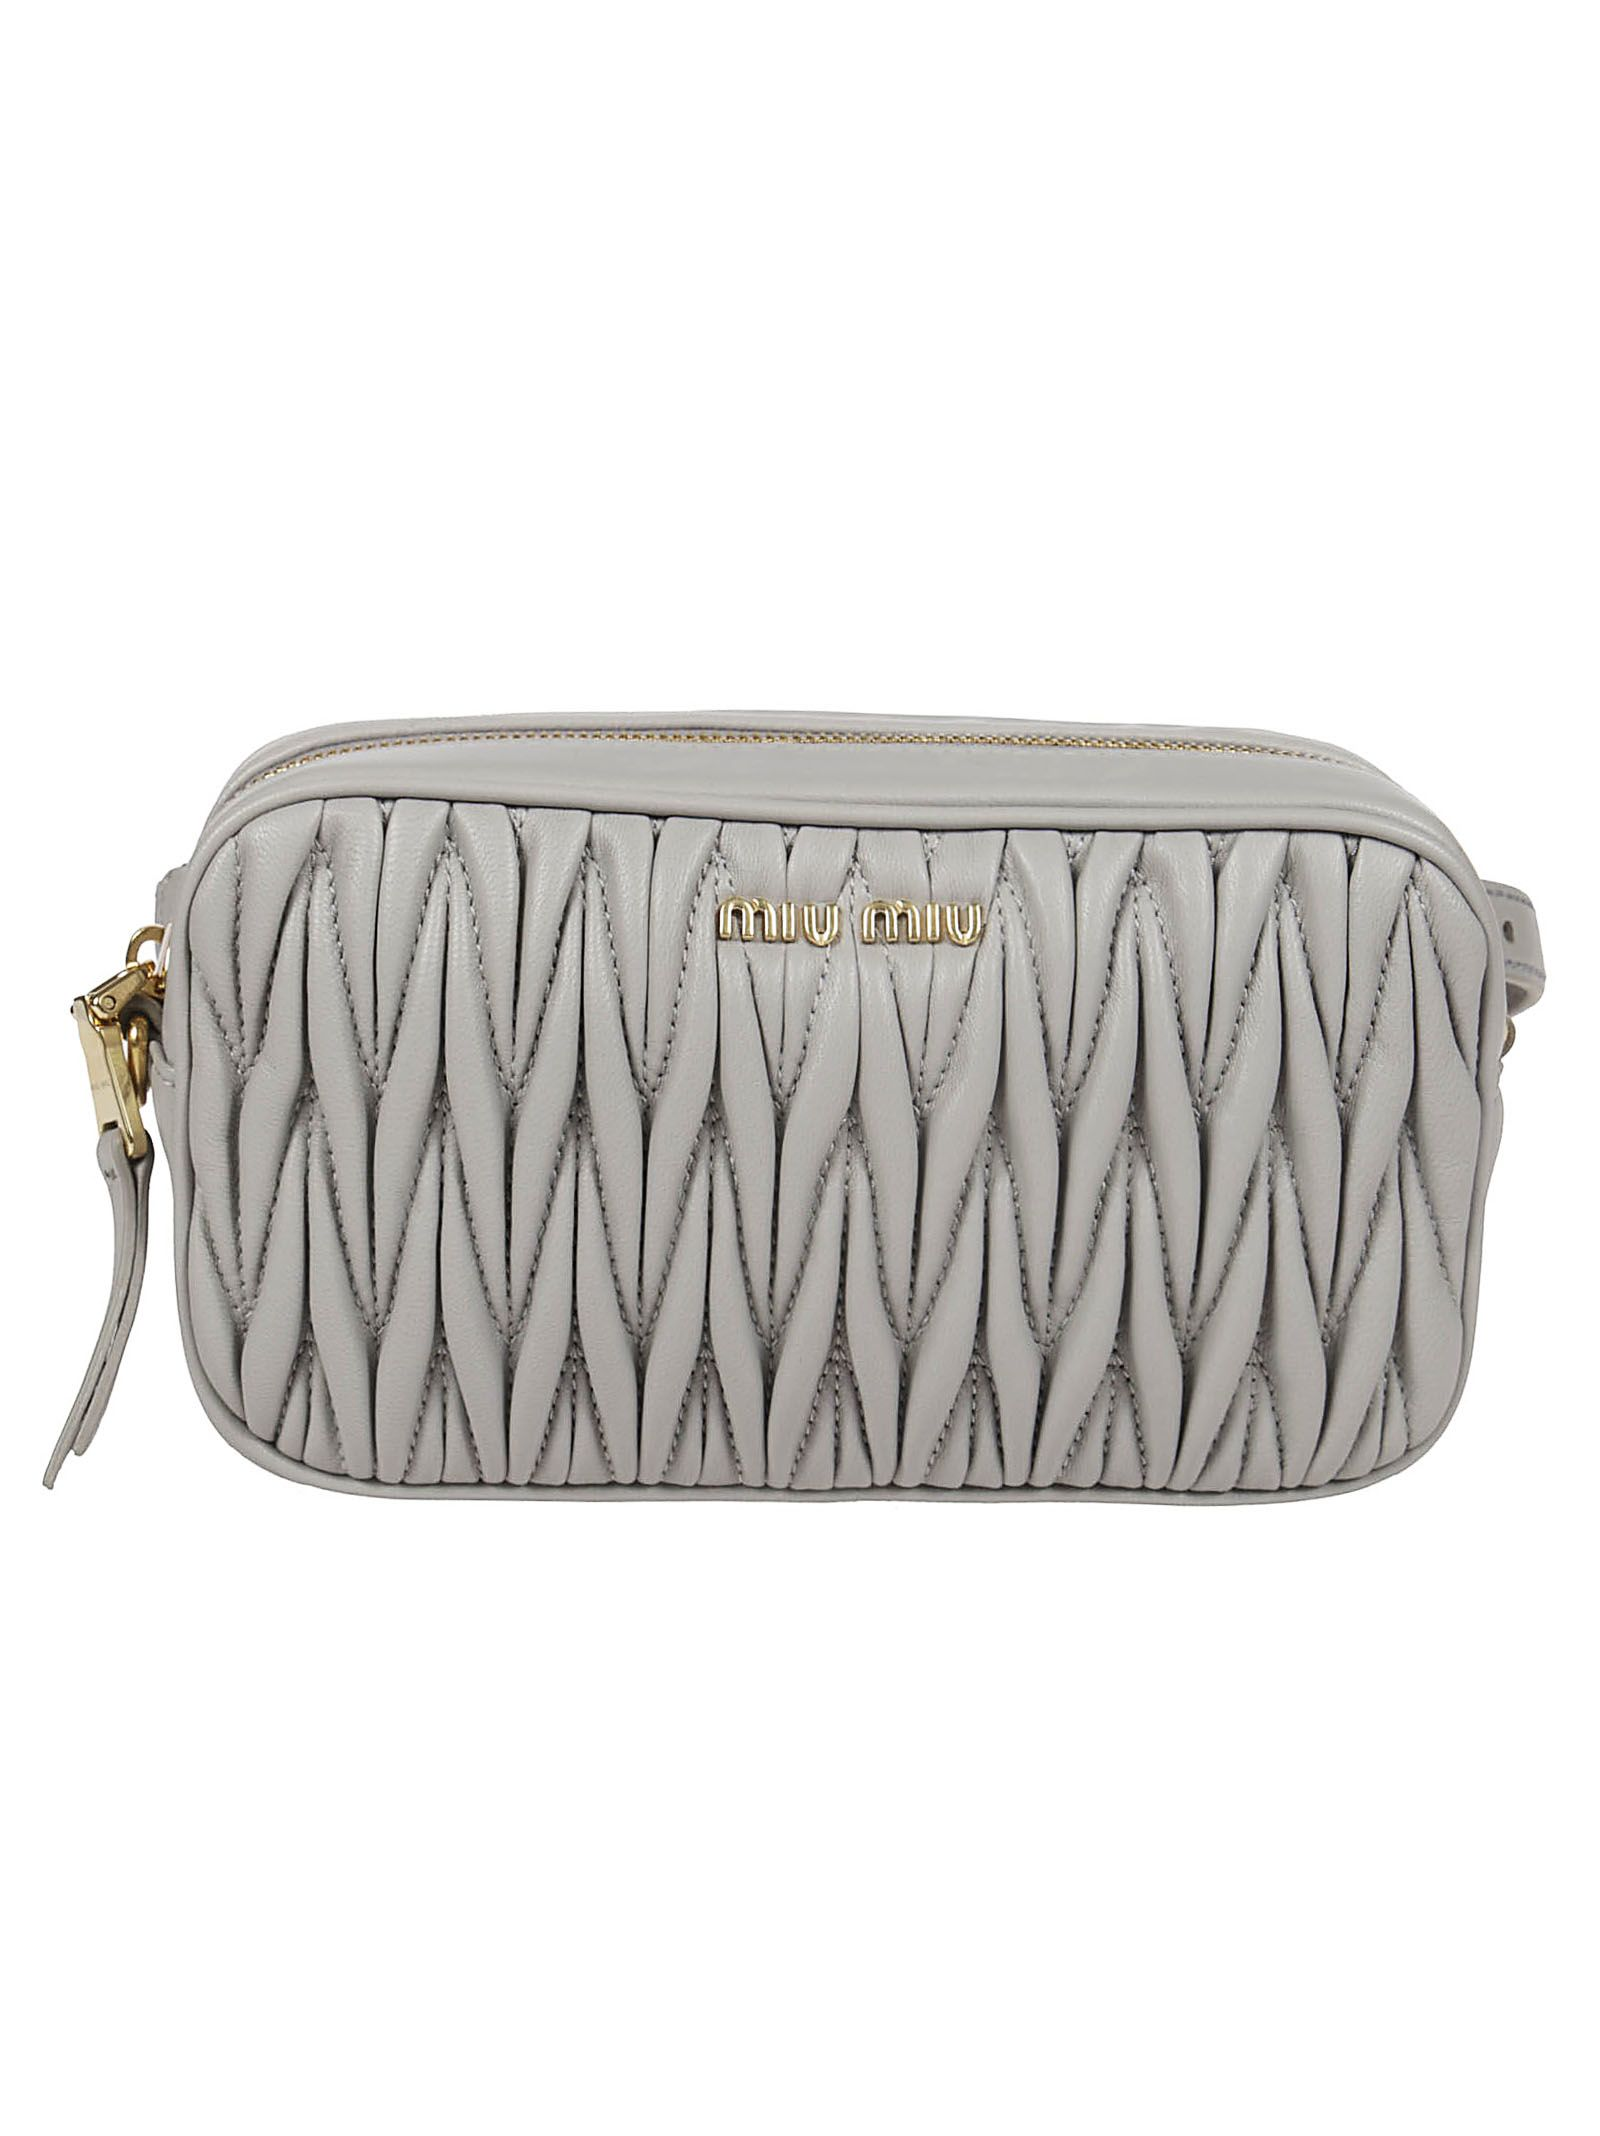 ffff152aaff1 Miu Miu Miu Miu Matelassé Mini Shoulder Bag - Grey - 10830994